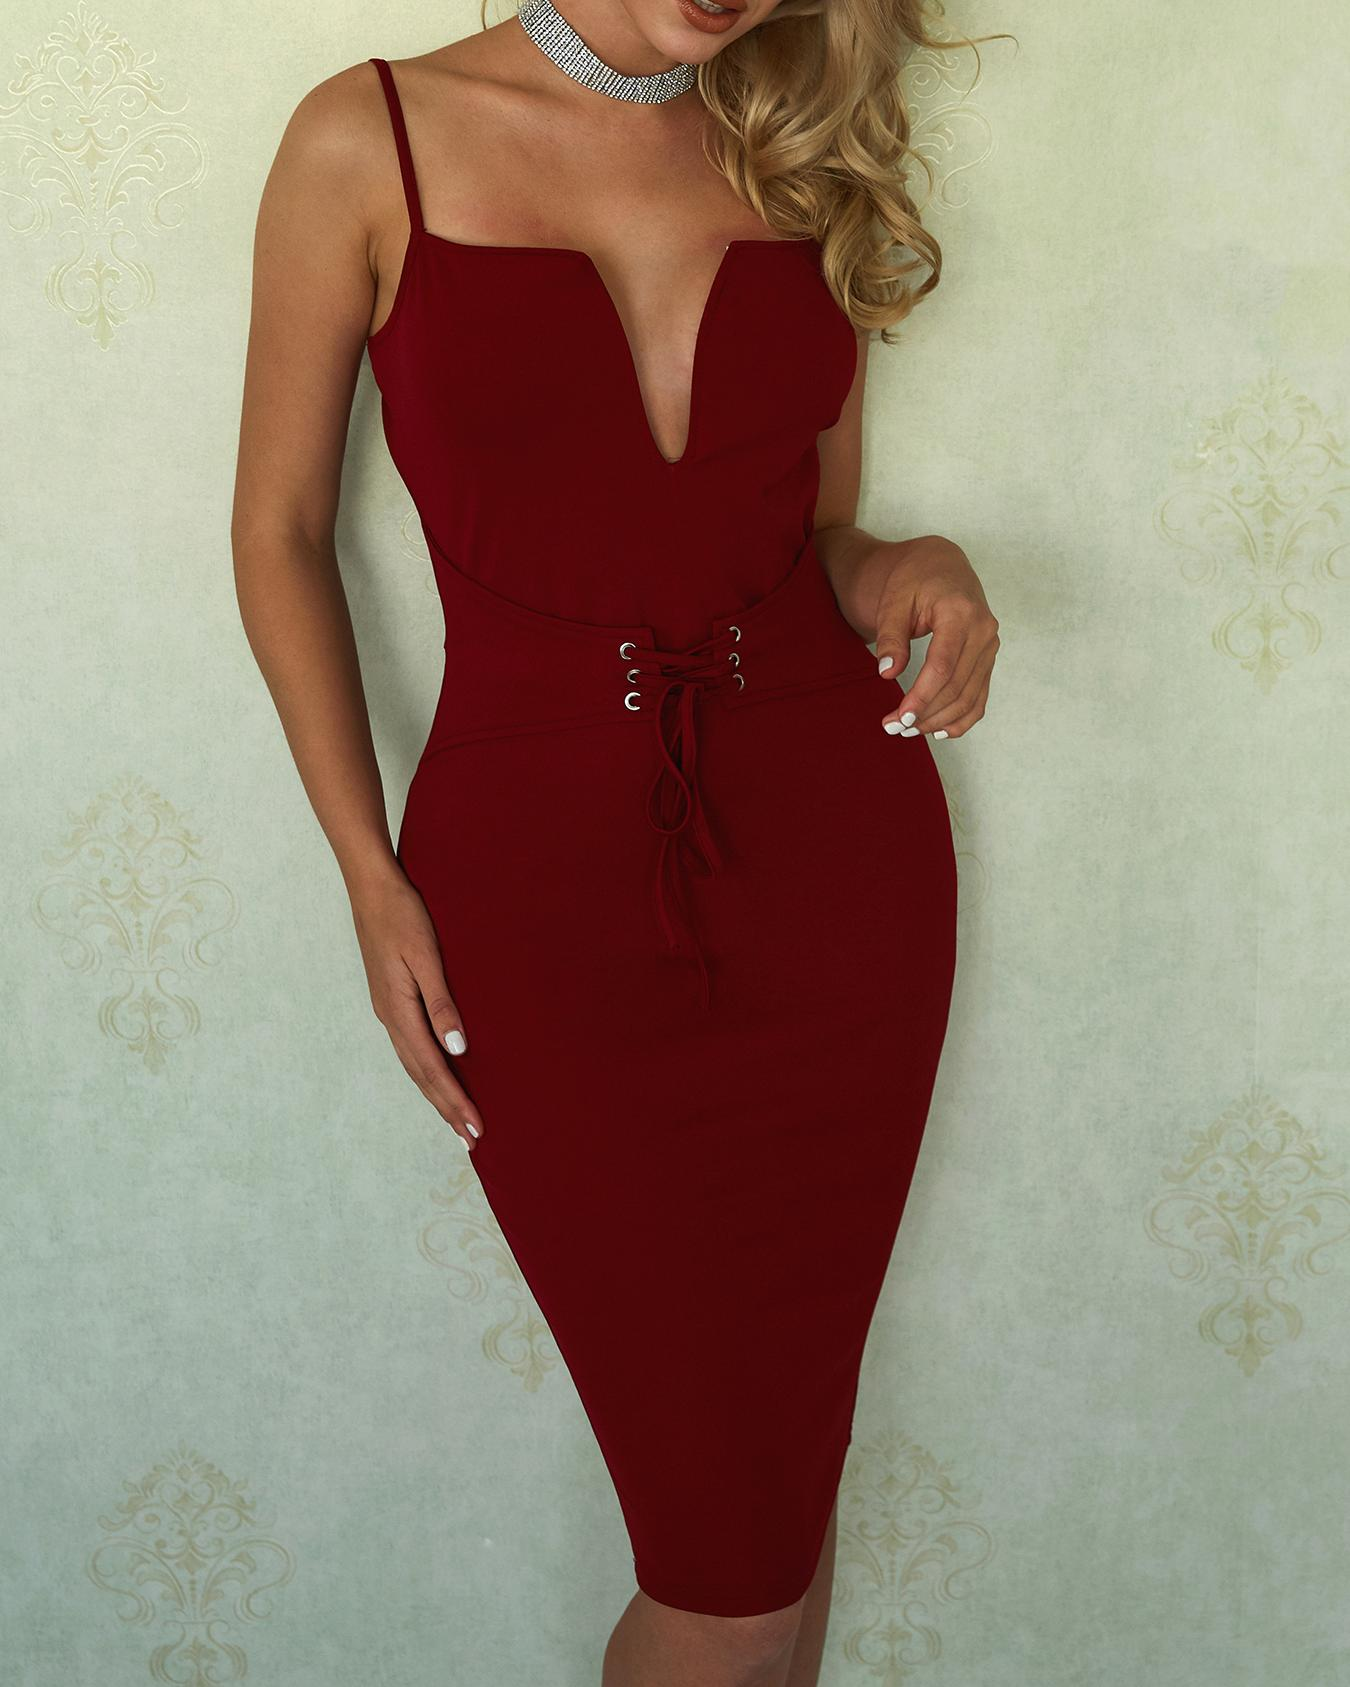 Joyshoetique coupon: Sexy Lace-Up Eyelet Cocktail Party Bodycon Dress